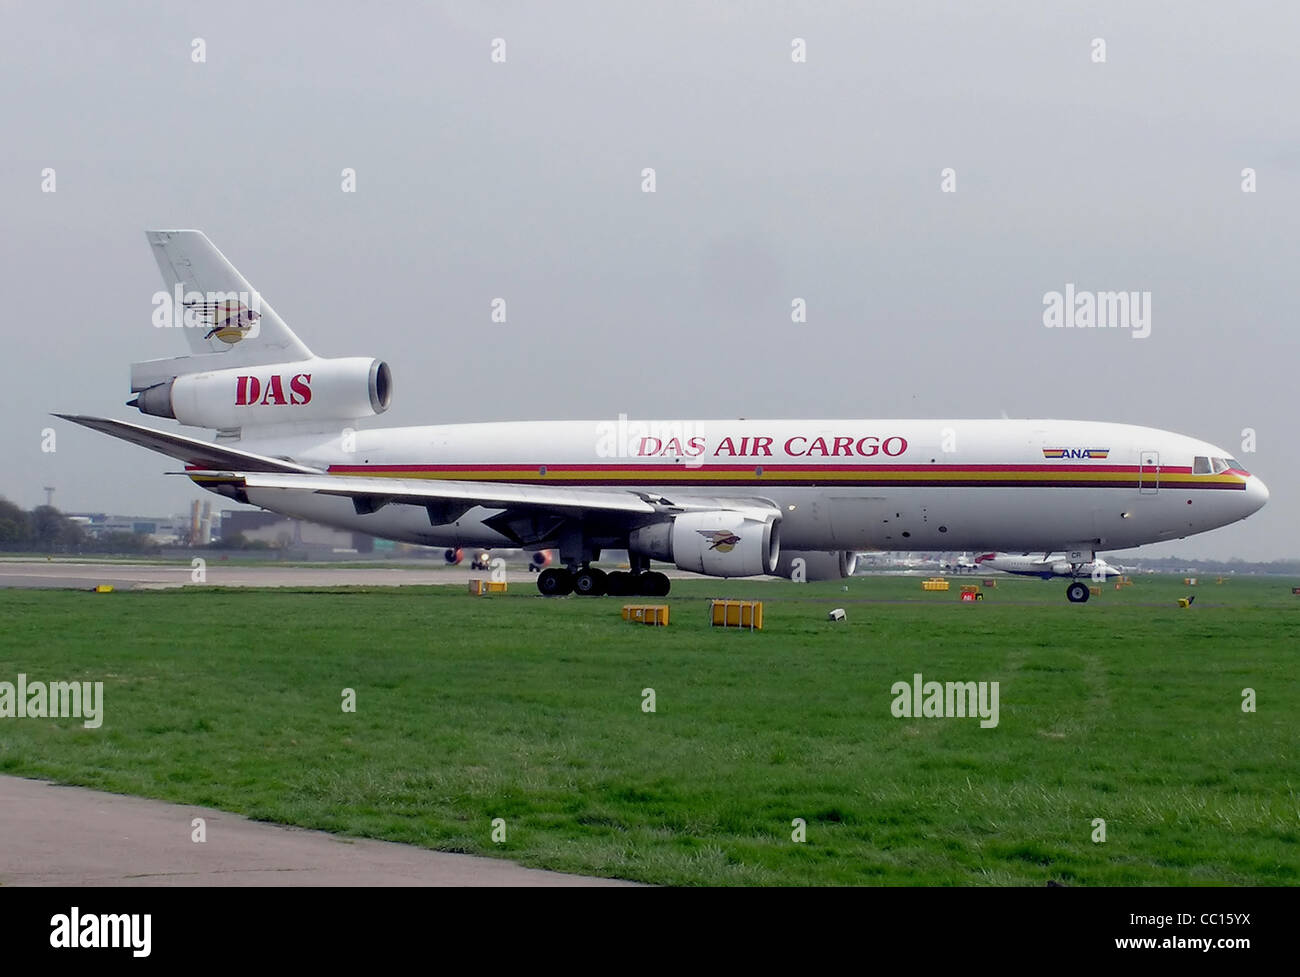 DAS Air Cargo DC-10-30 (5X-JCR) waiting for permission to take off at London Gatwick Airport, England. - Stock Image